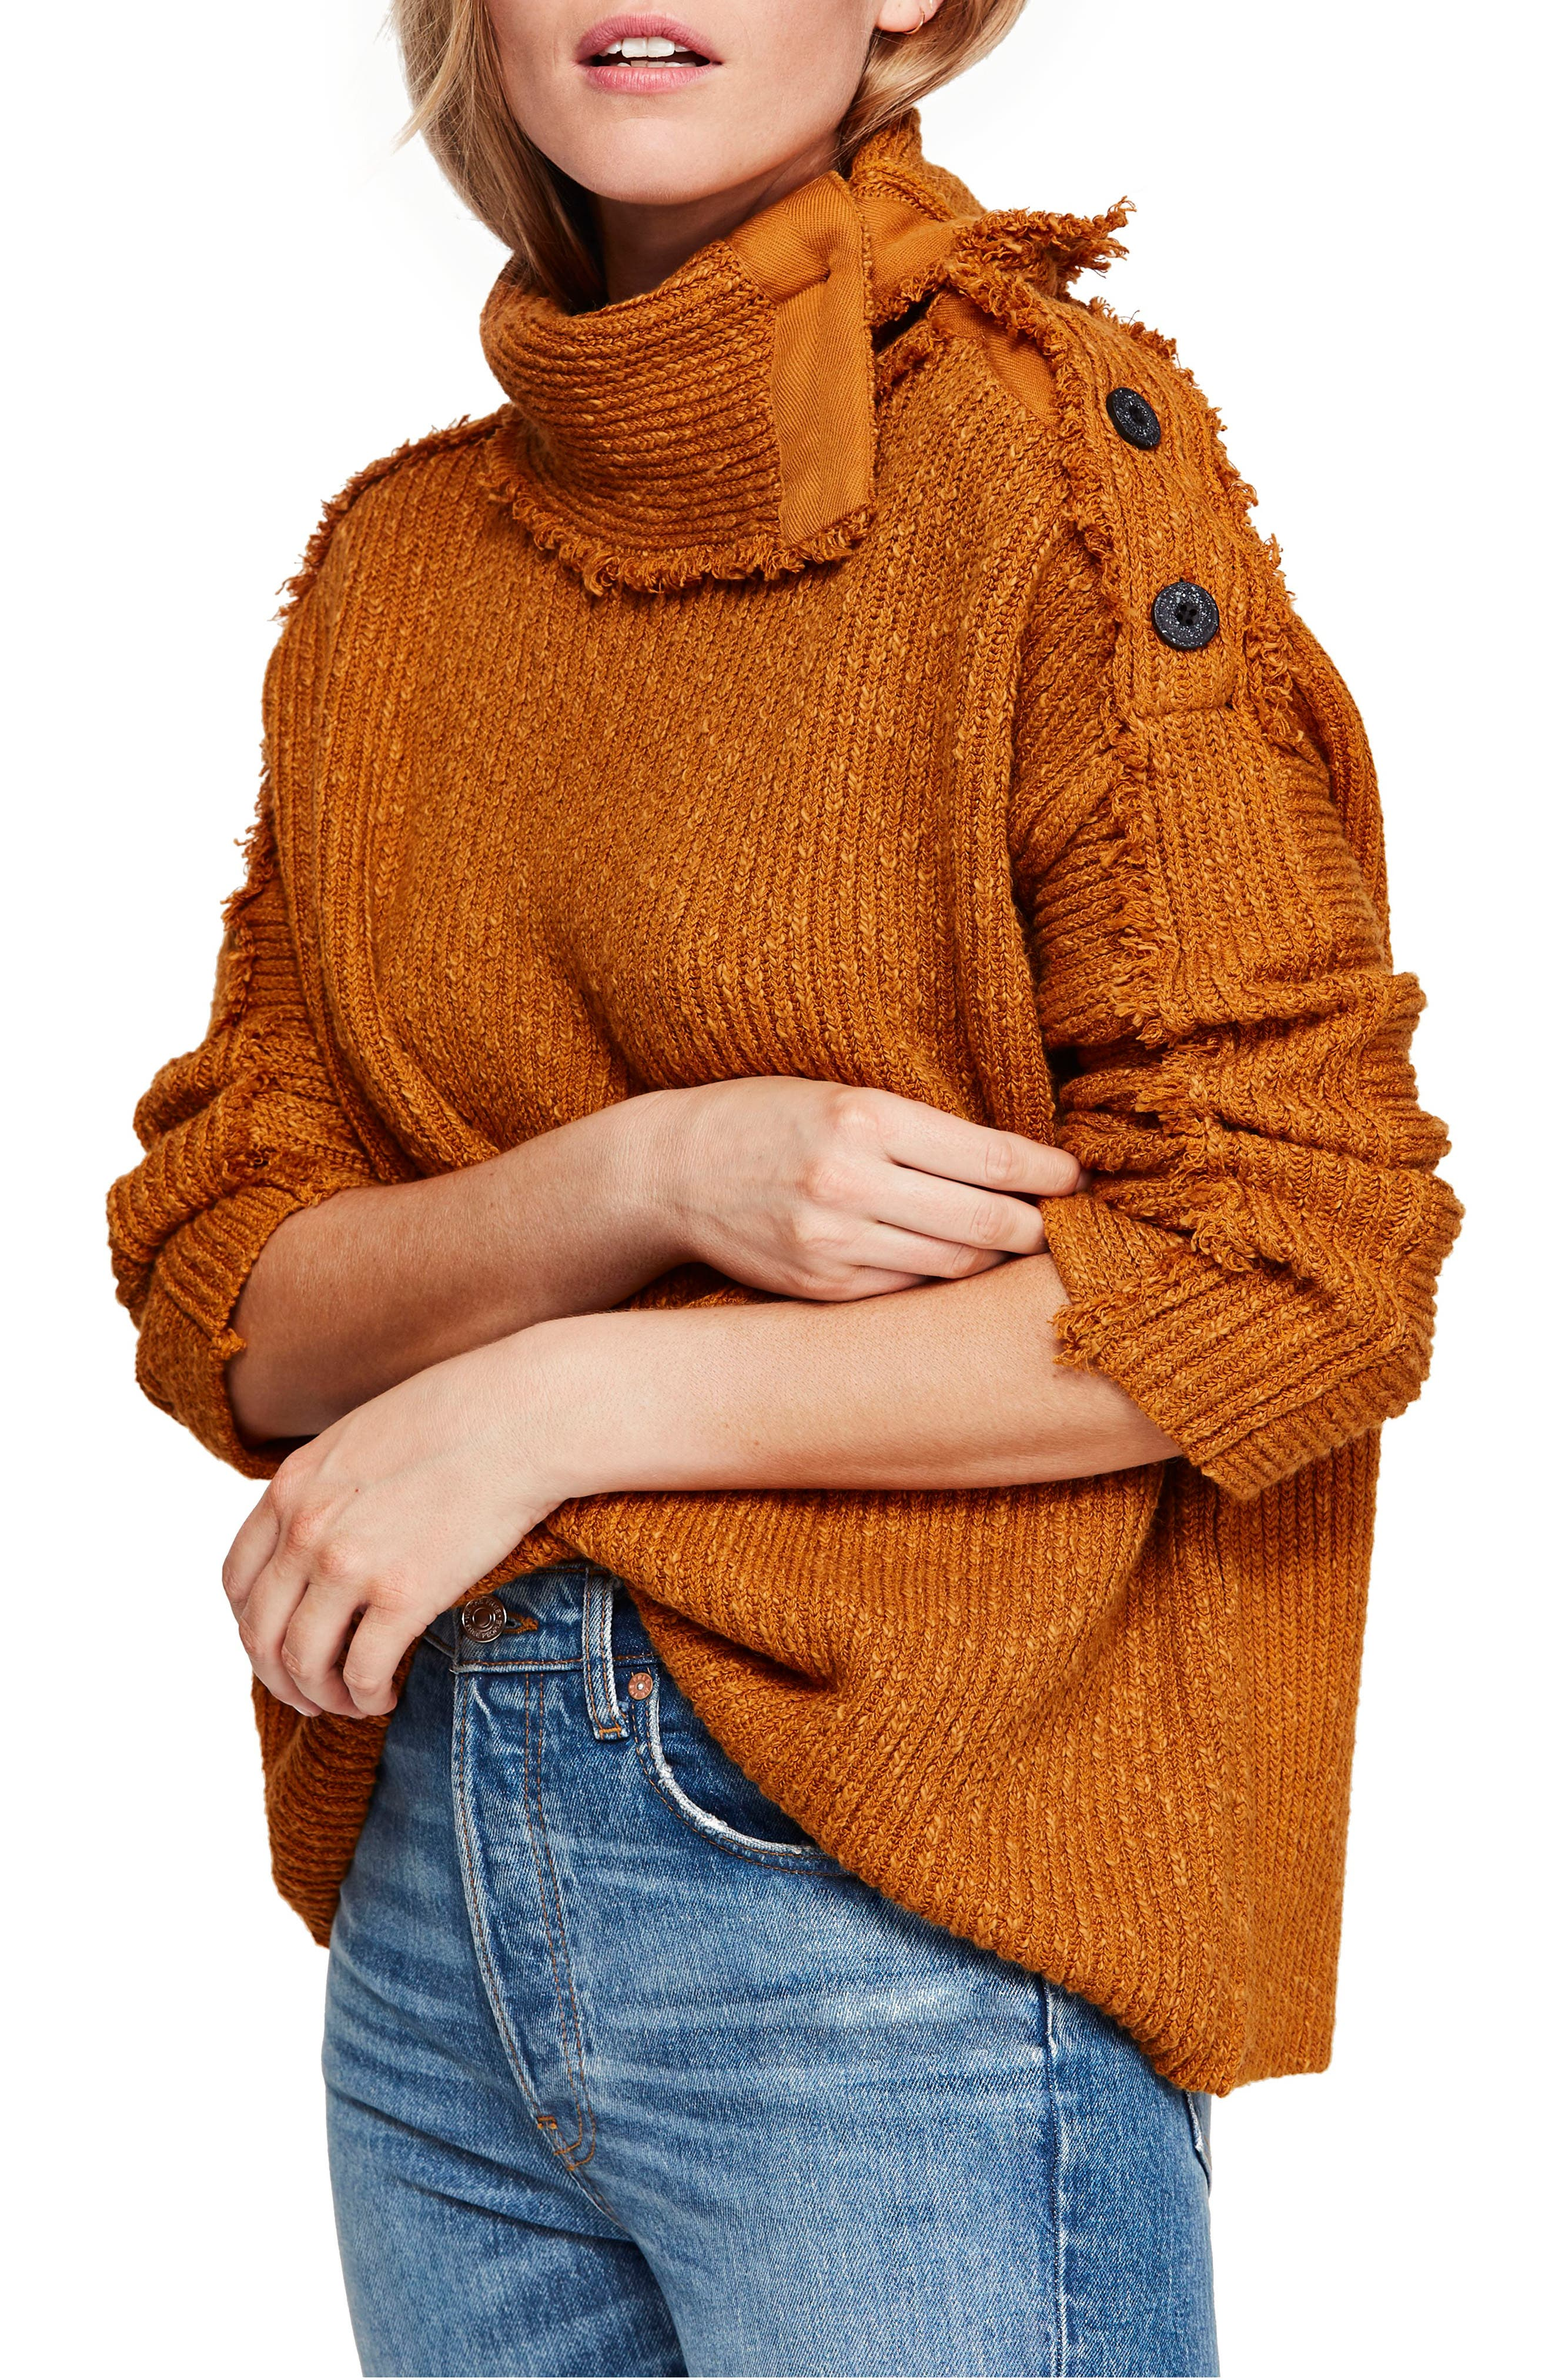 FREE PEOPLE, On My Side Turtleneck Sweater, Main thumbnail 1, color, 710